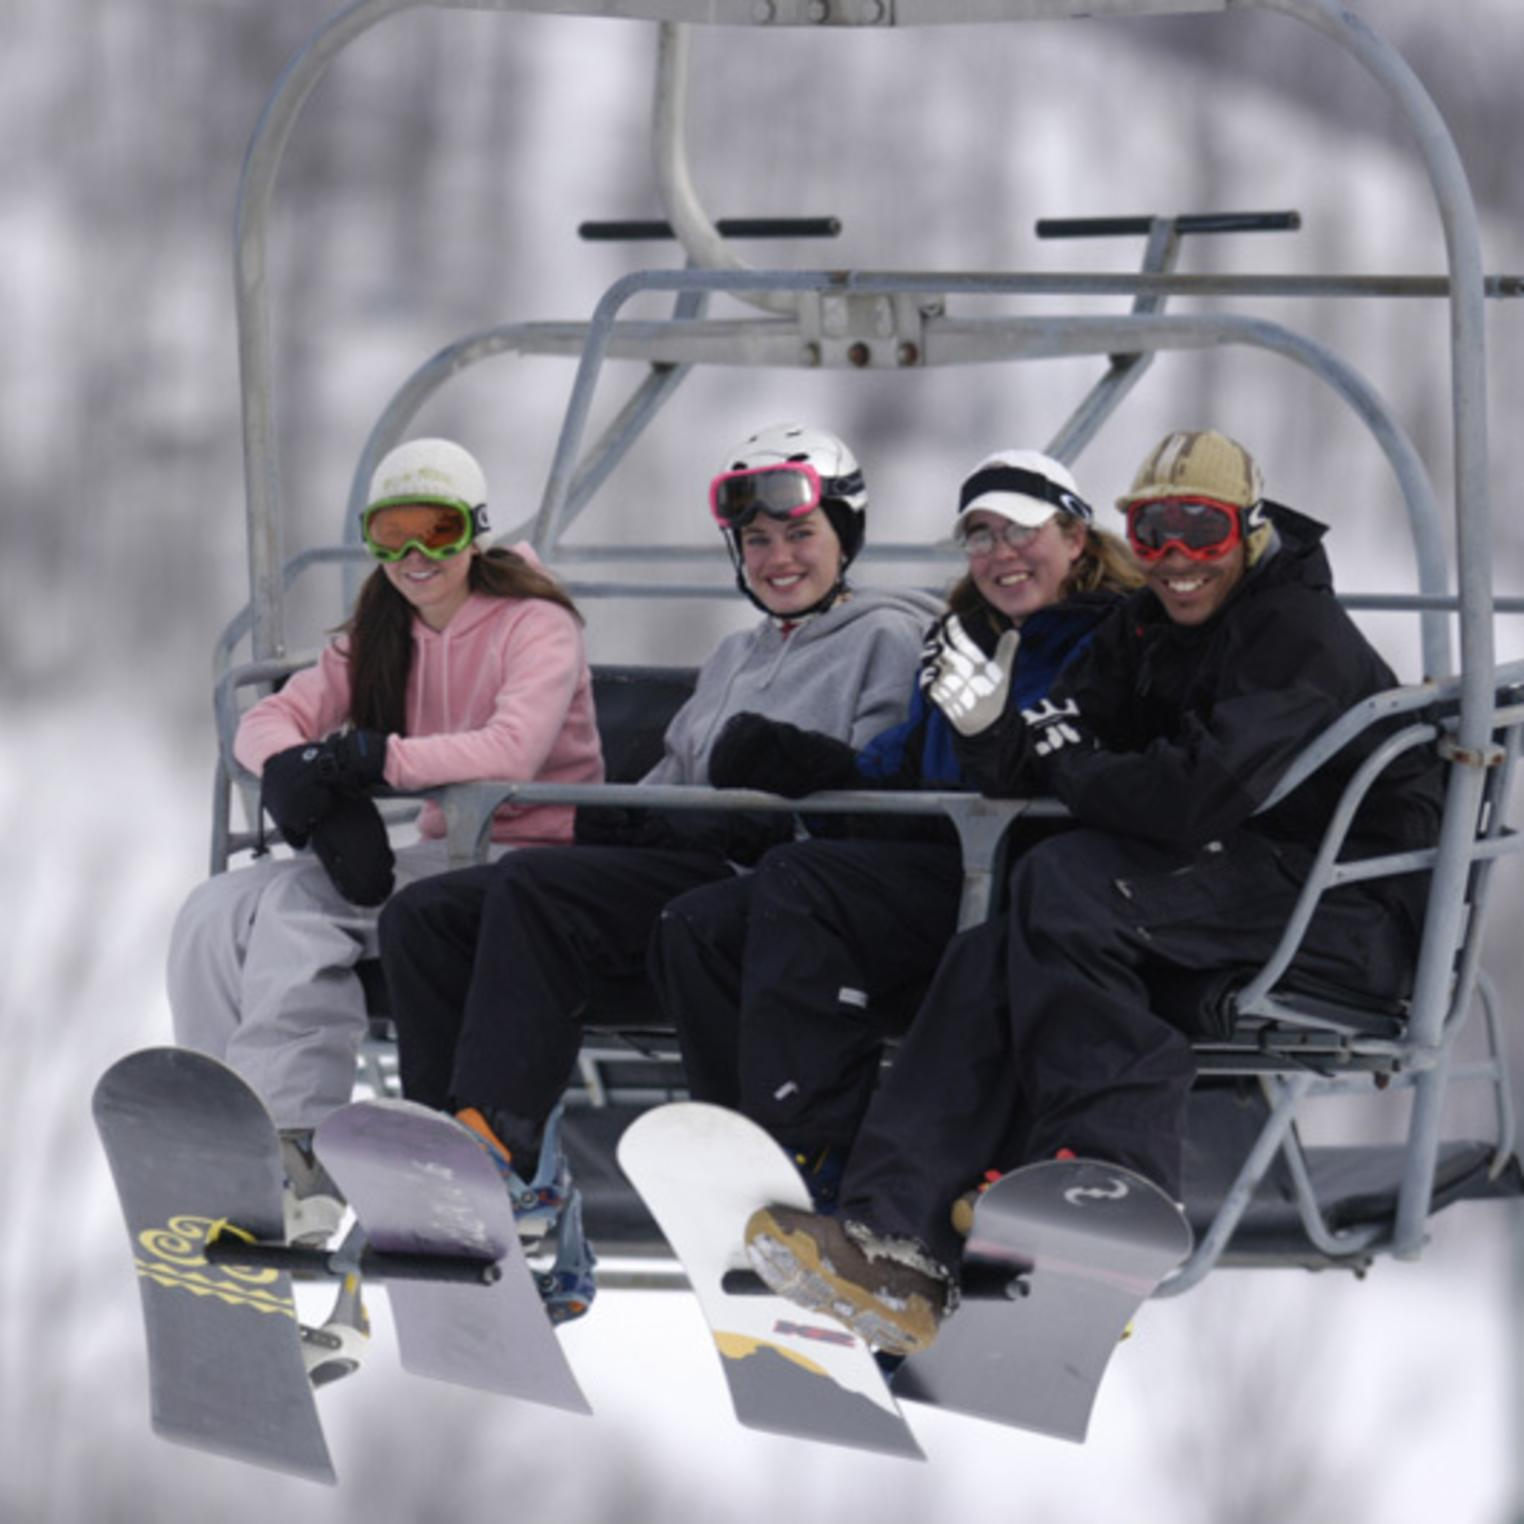 Ski Lift at Roundtop Mountain Resort